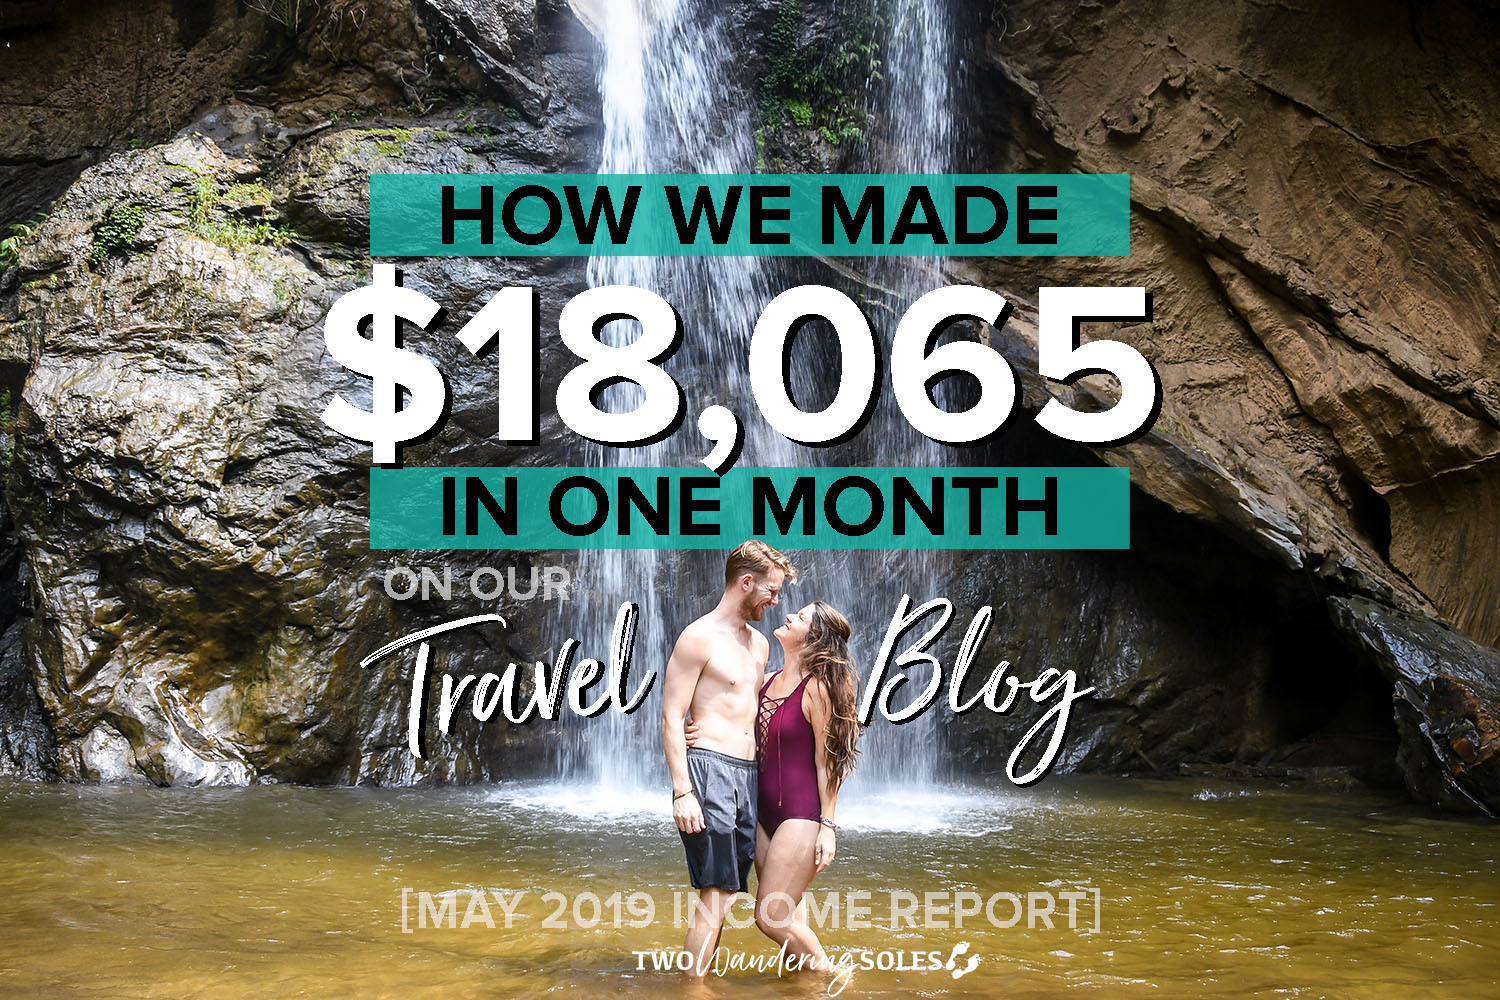 Travel Blog Income Report May 2019 Two Wandering Soles